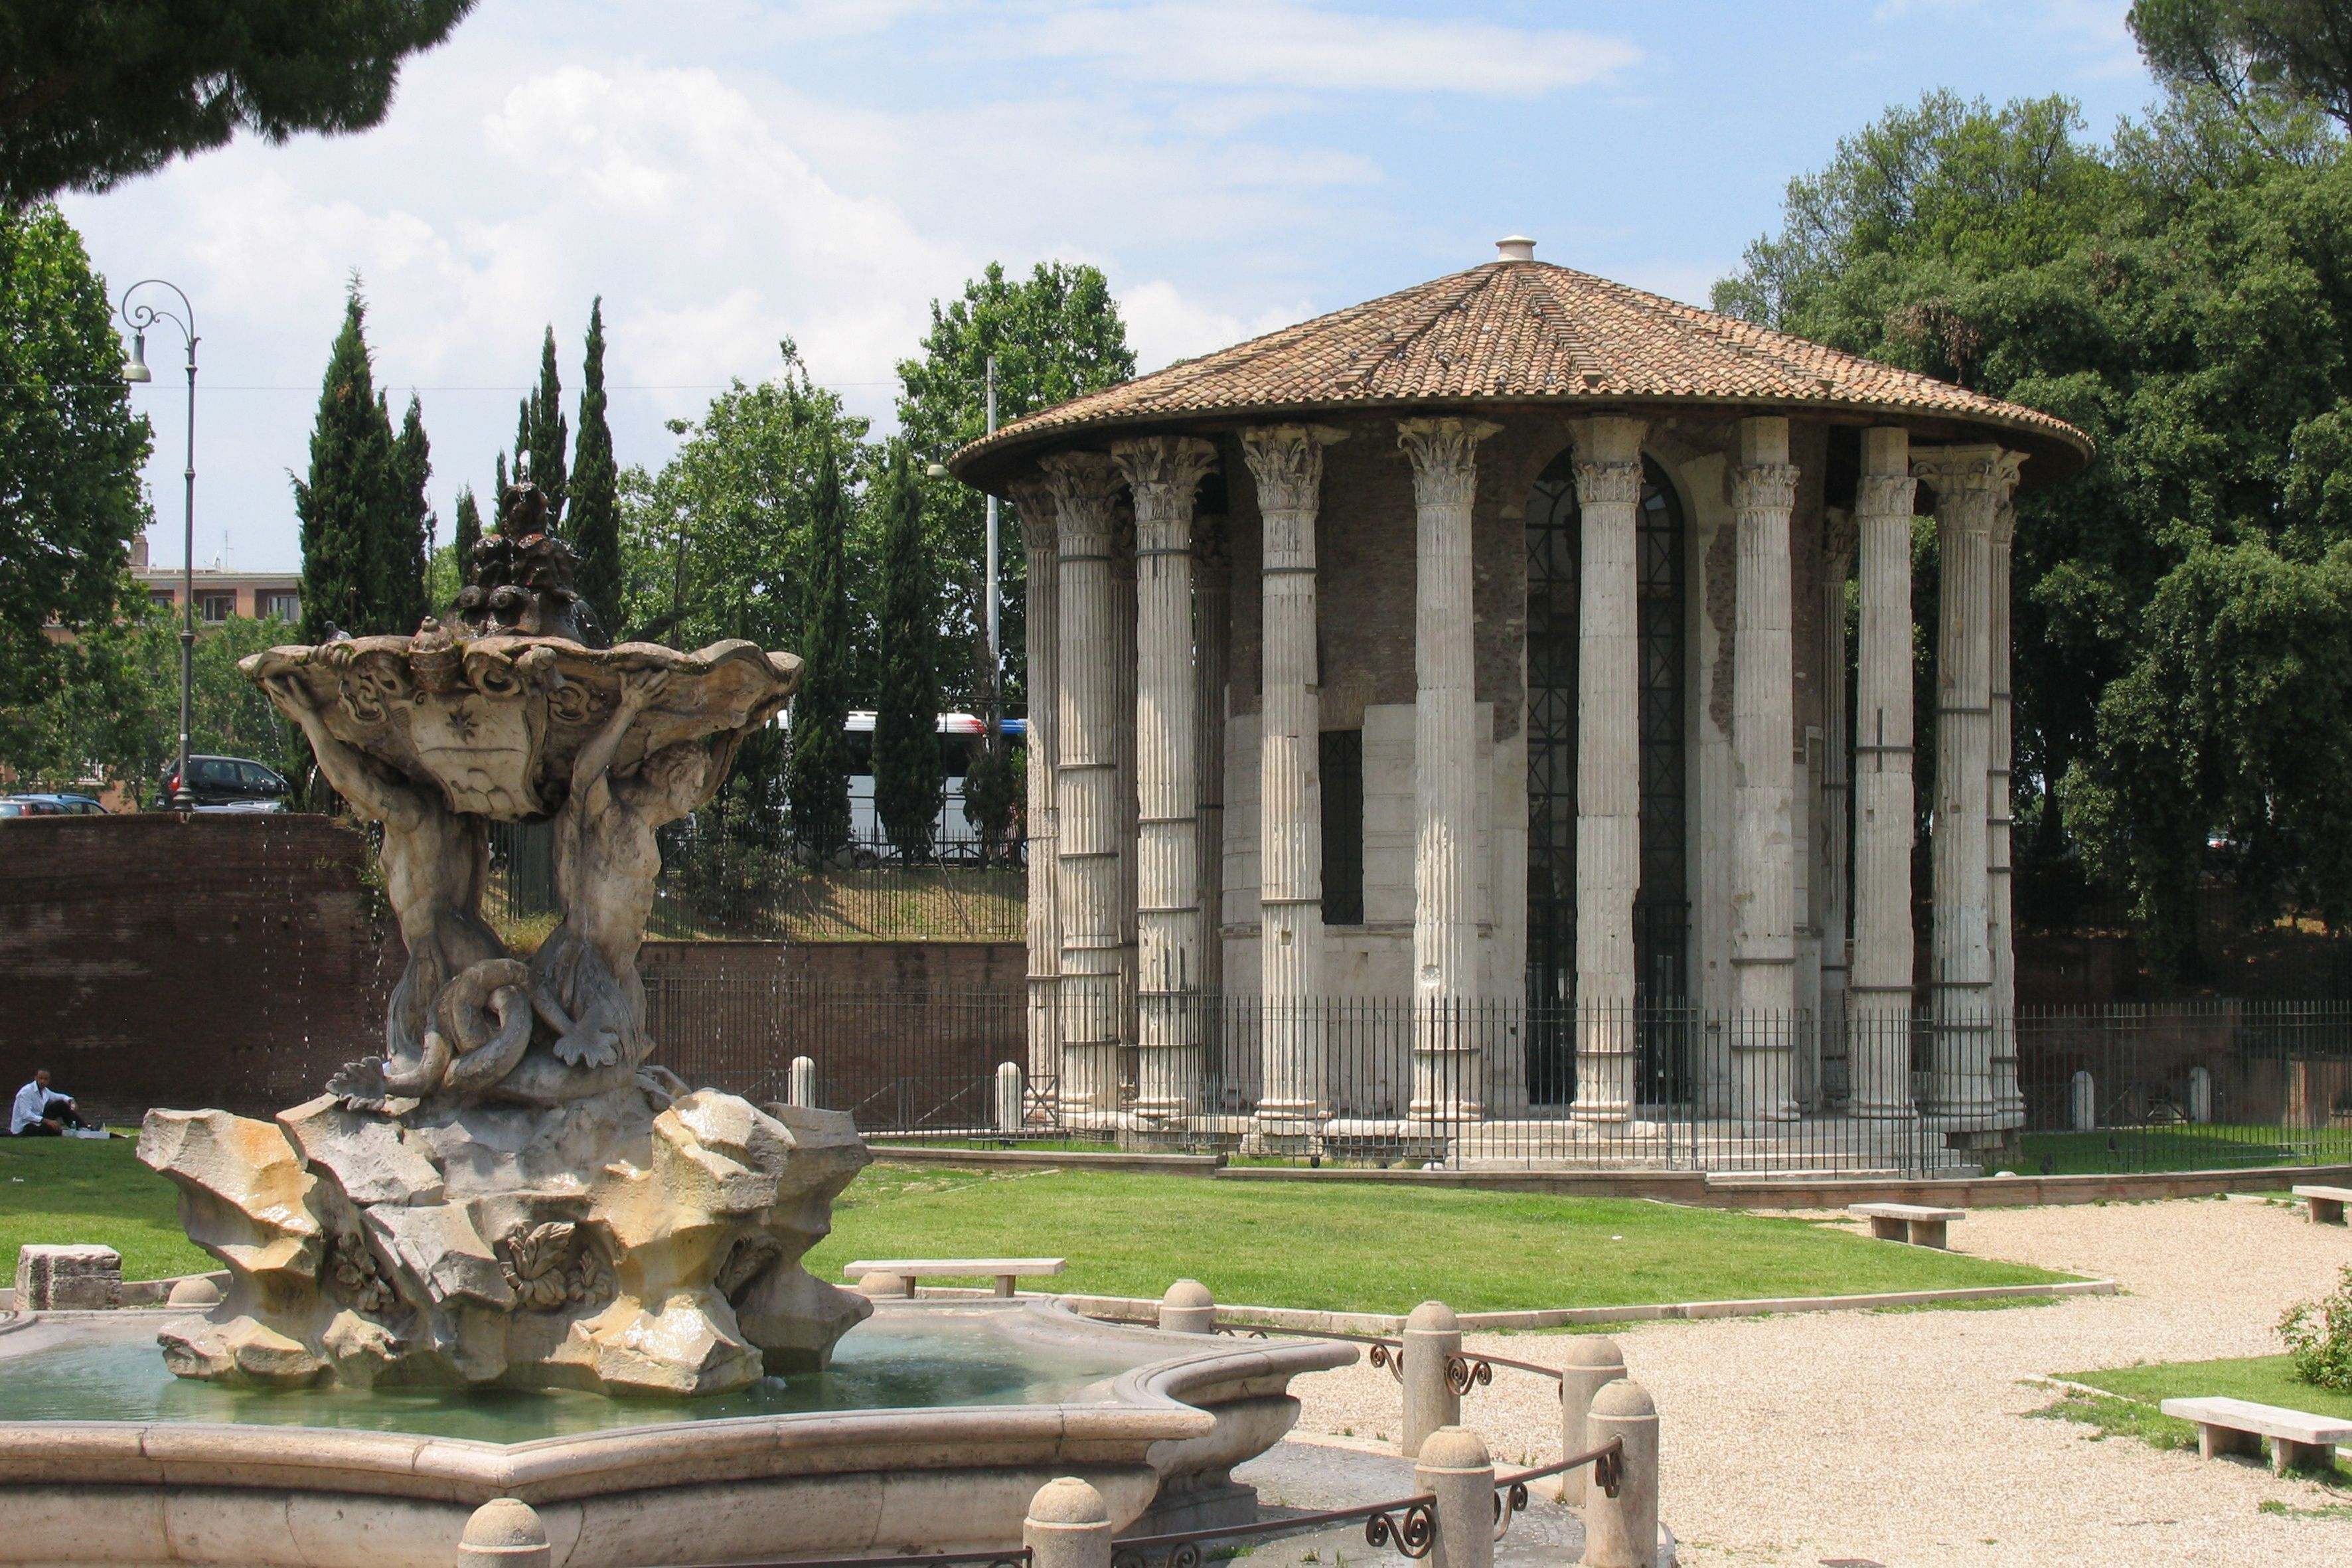 SIGHTS. Tempio Di Vesta. Long called the Temple of Vesta because of its similarity in shape to the building of that name in the Roman Forum, it's now recognized as a temple to Hercules Victor. All but one of the 20 Corinthian columns of this evocative ruin remain intact. Lik